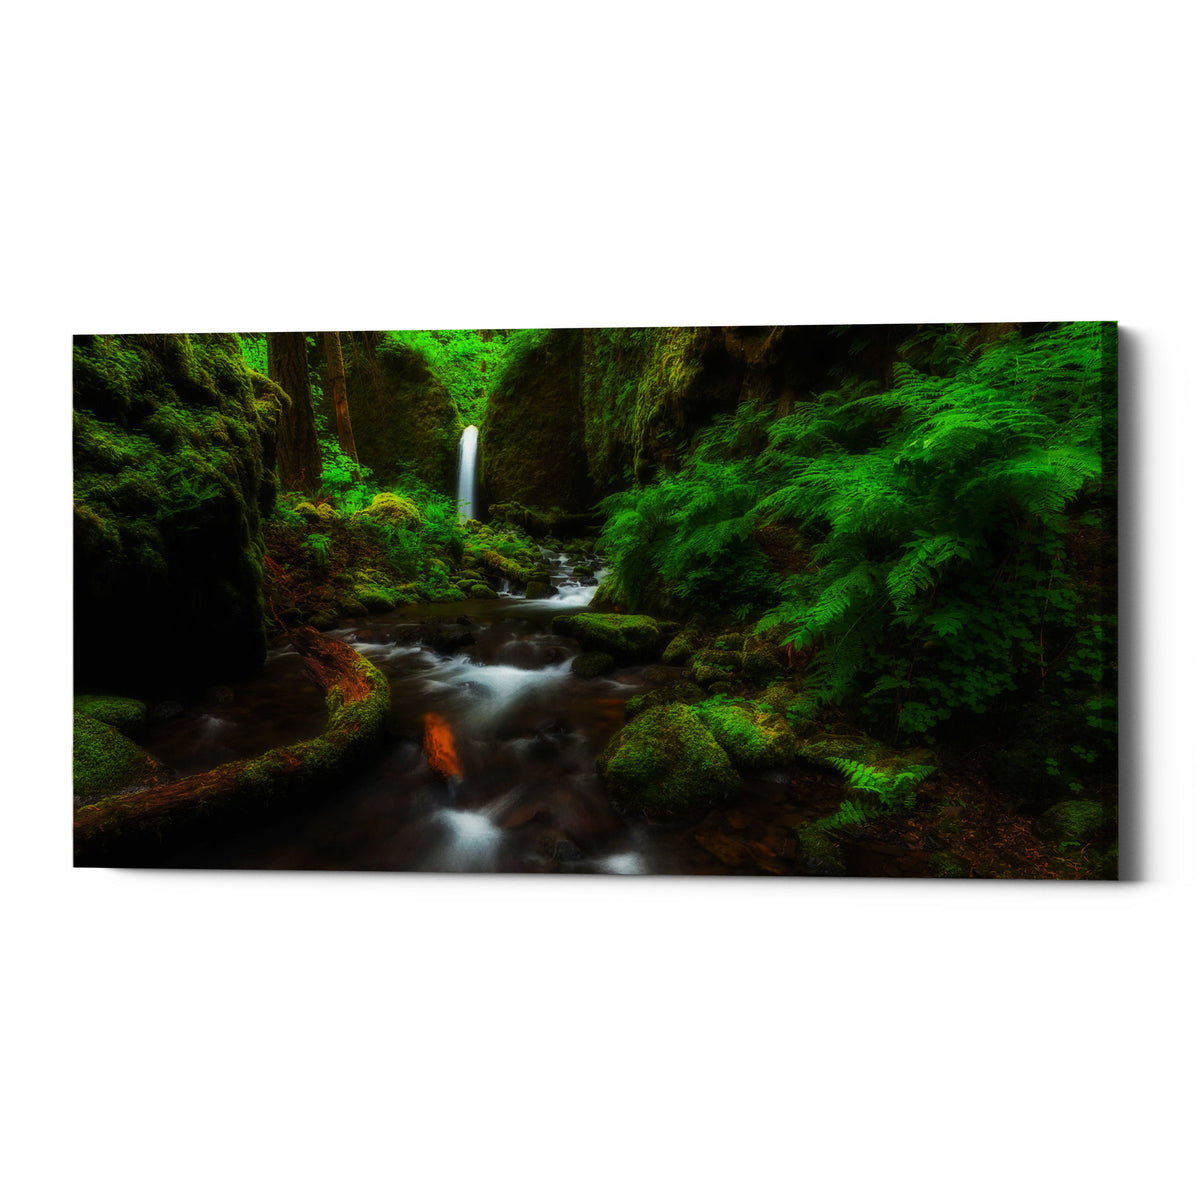 "Epic Graffiti ""Early Morning At The Grotto"" by Darren White, Giclee Canvas Wall Art"